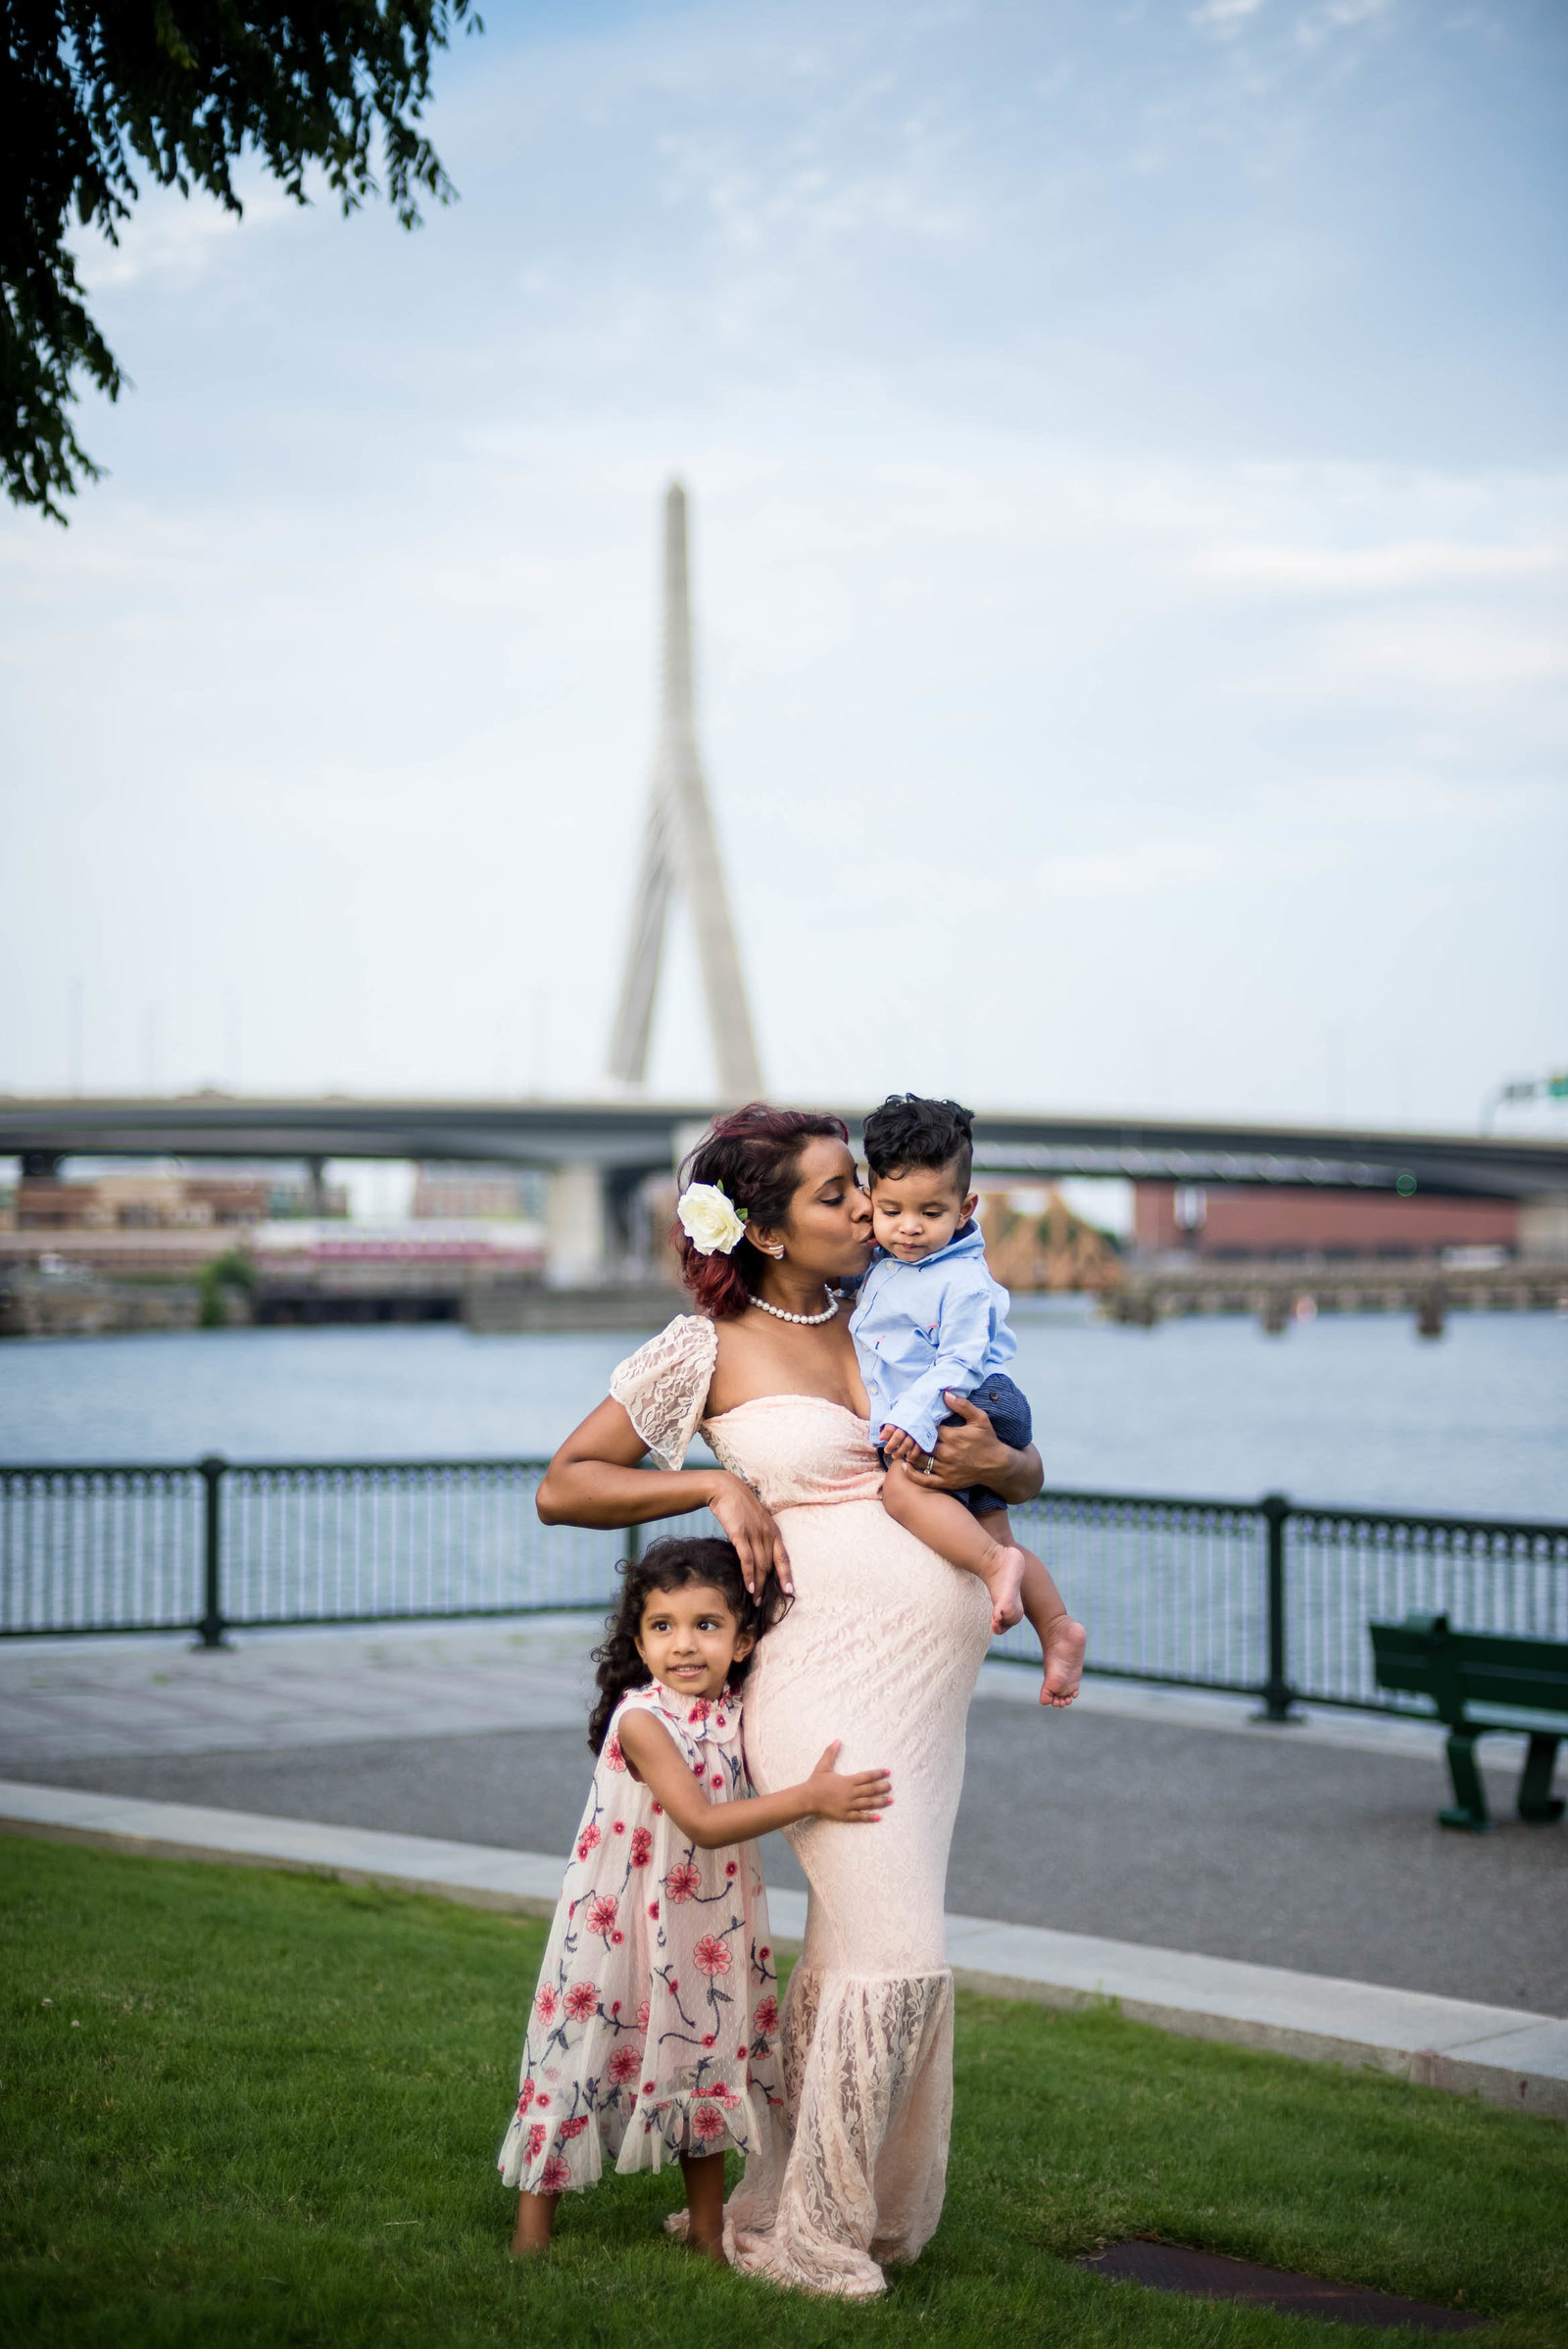 Boston-Family-Photographer-Charles-River-Esplanade-5